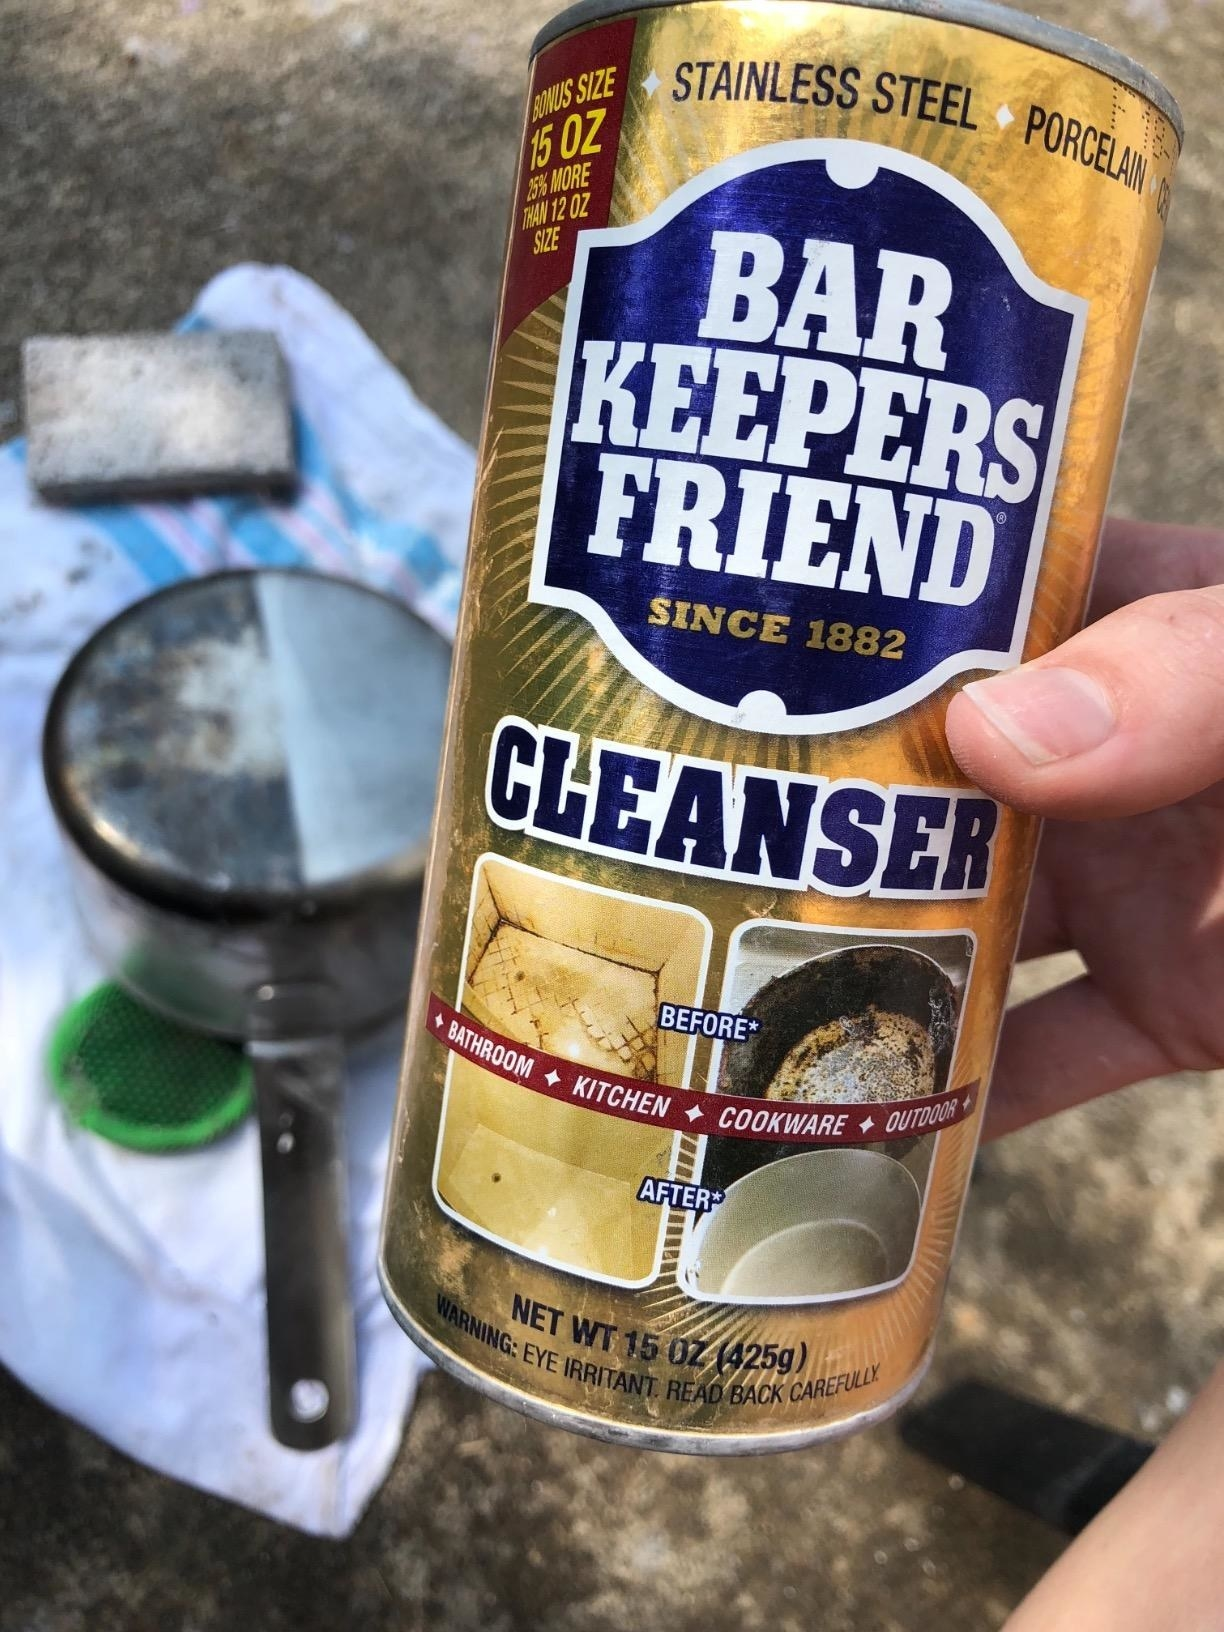 the can of cleanser held by reviewer in front of pan that is half cleaned to show how effective it is